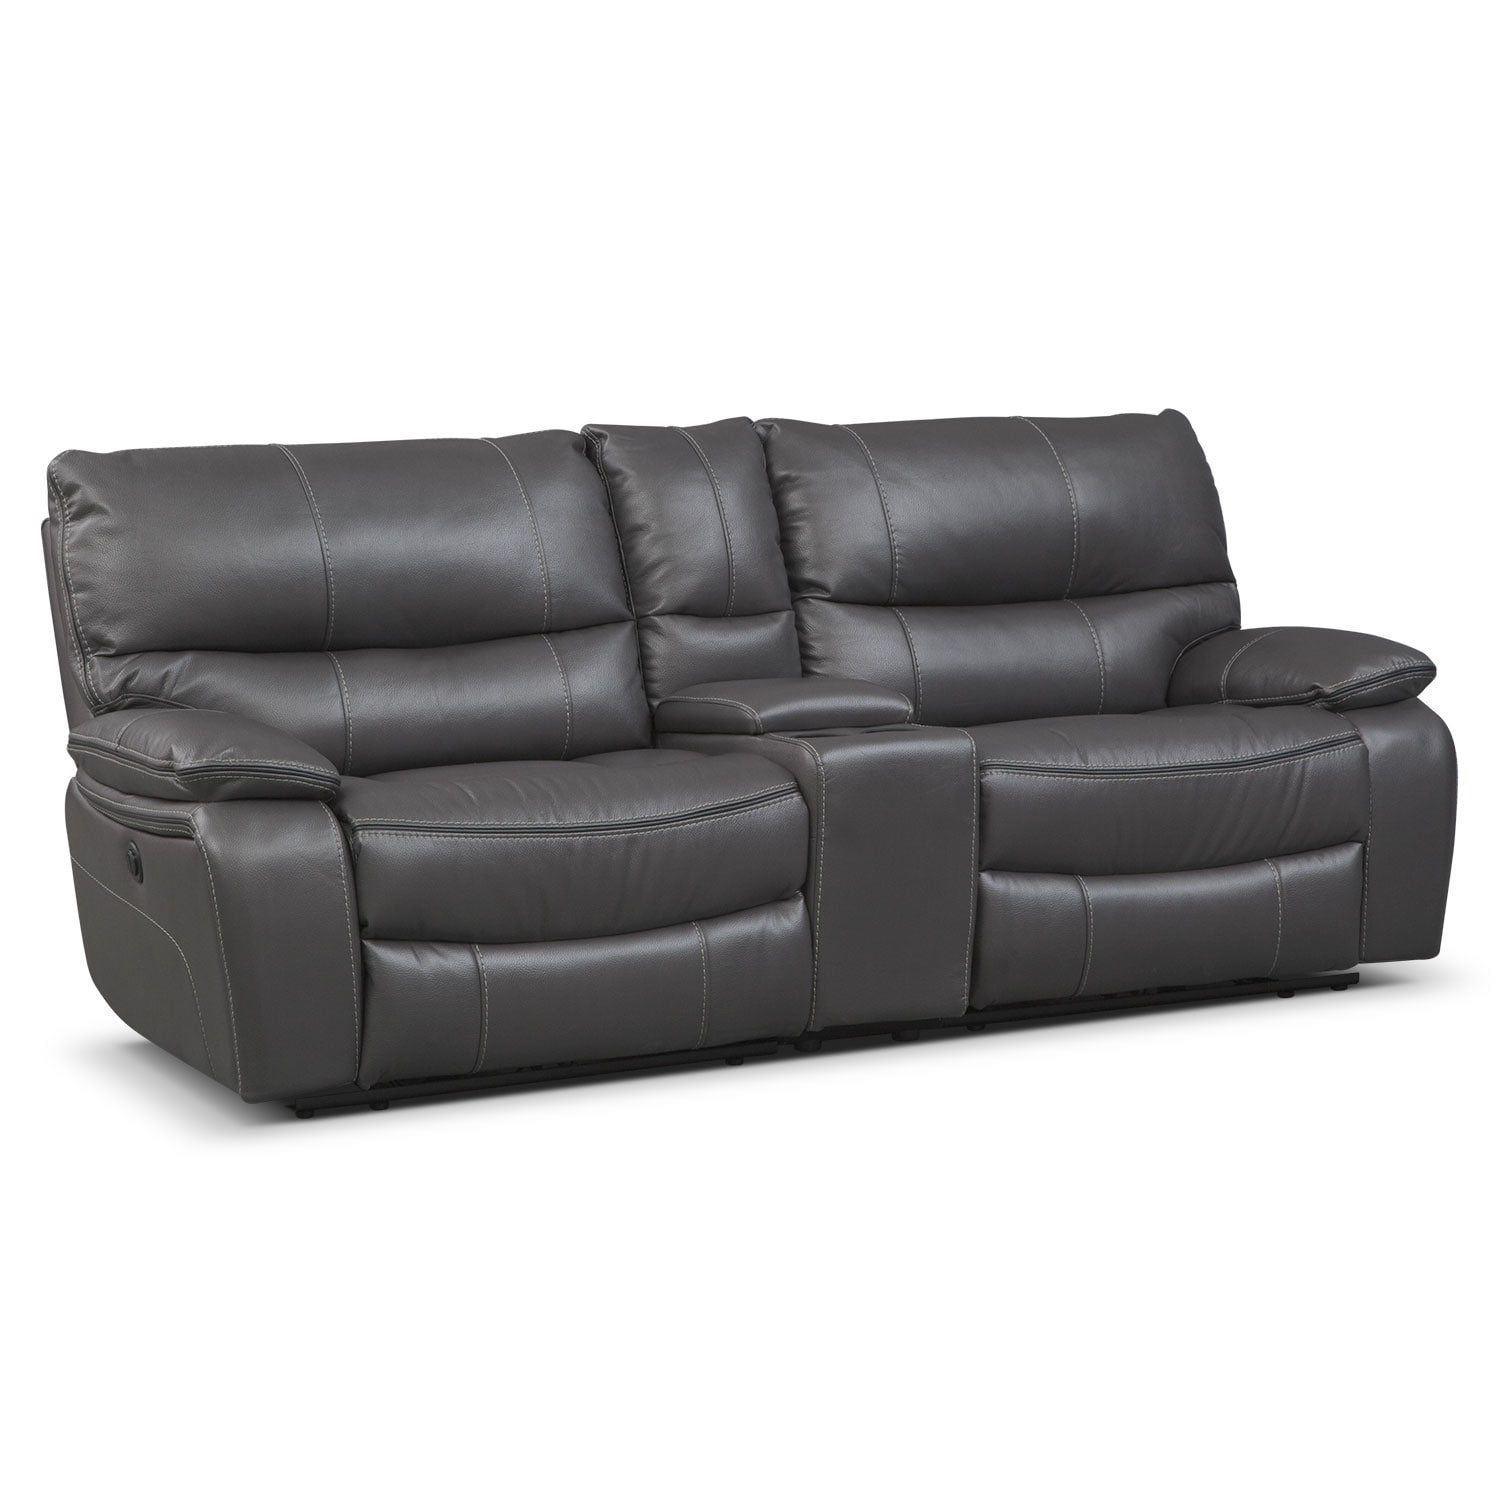 Beautiful Living Room Furniture   Orlando Power Reclining Sofa With Console   Gray